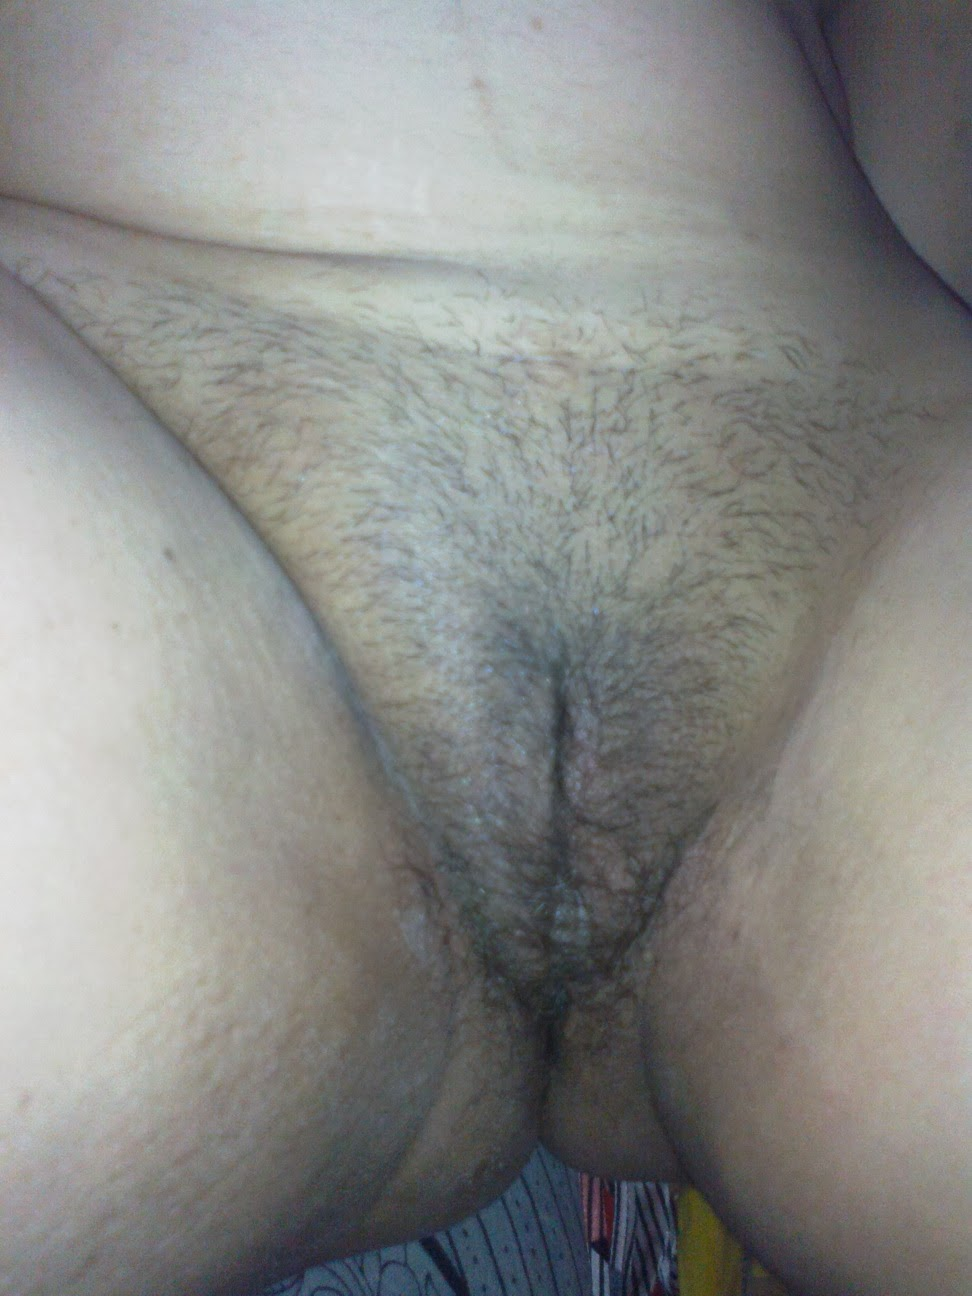 Indian aunty hairy pussies videos